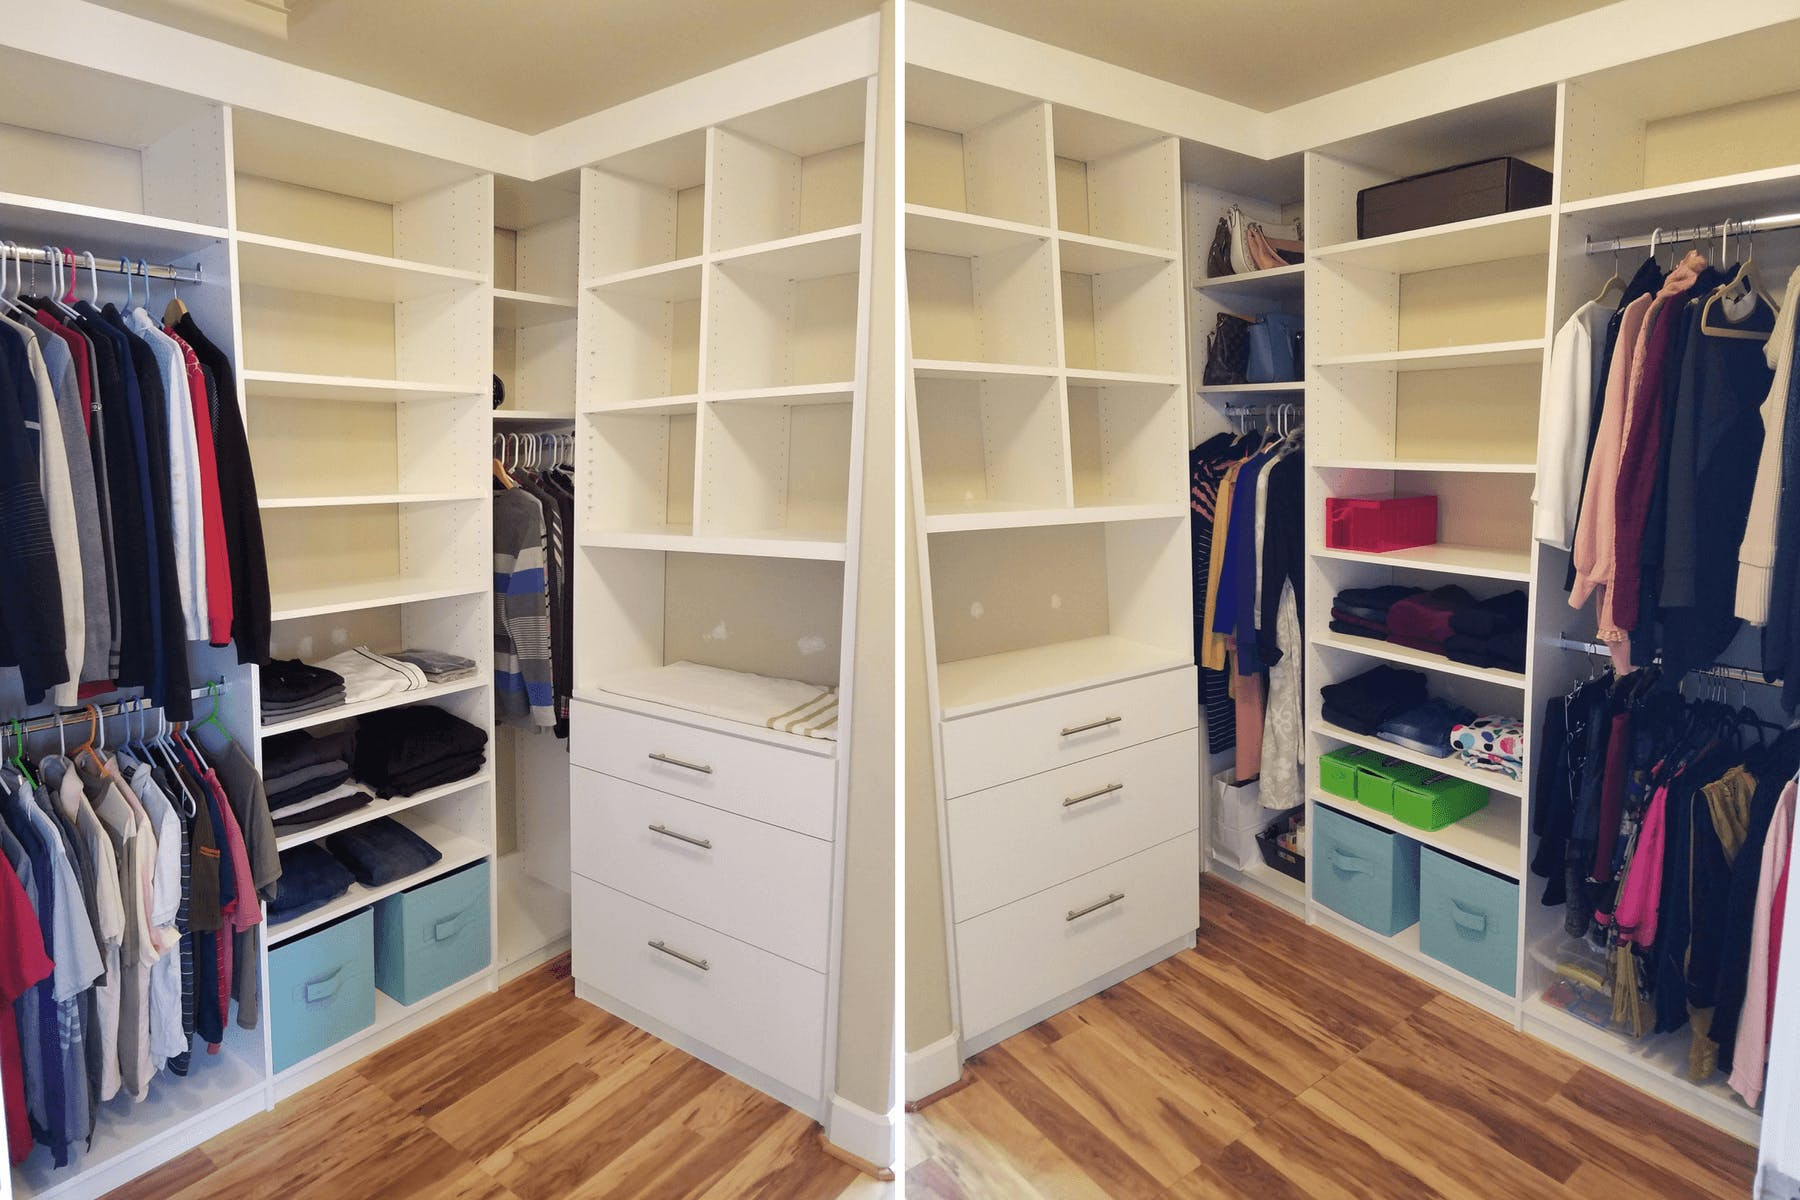 This Closet Also Incorporates Cabinets Above The Door For Storing Whatever  You Like! Oh, And Letu0027s Not Forgot About That Center Island With The  Stained ...